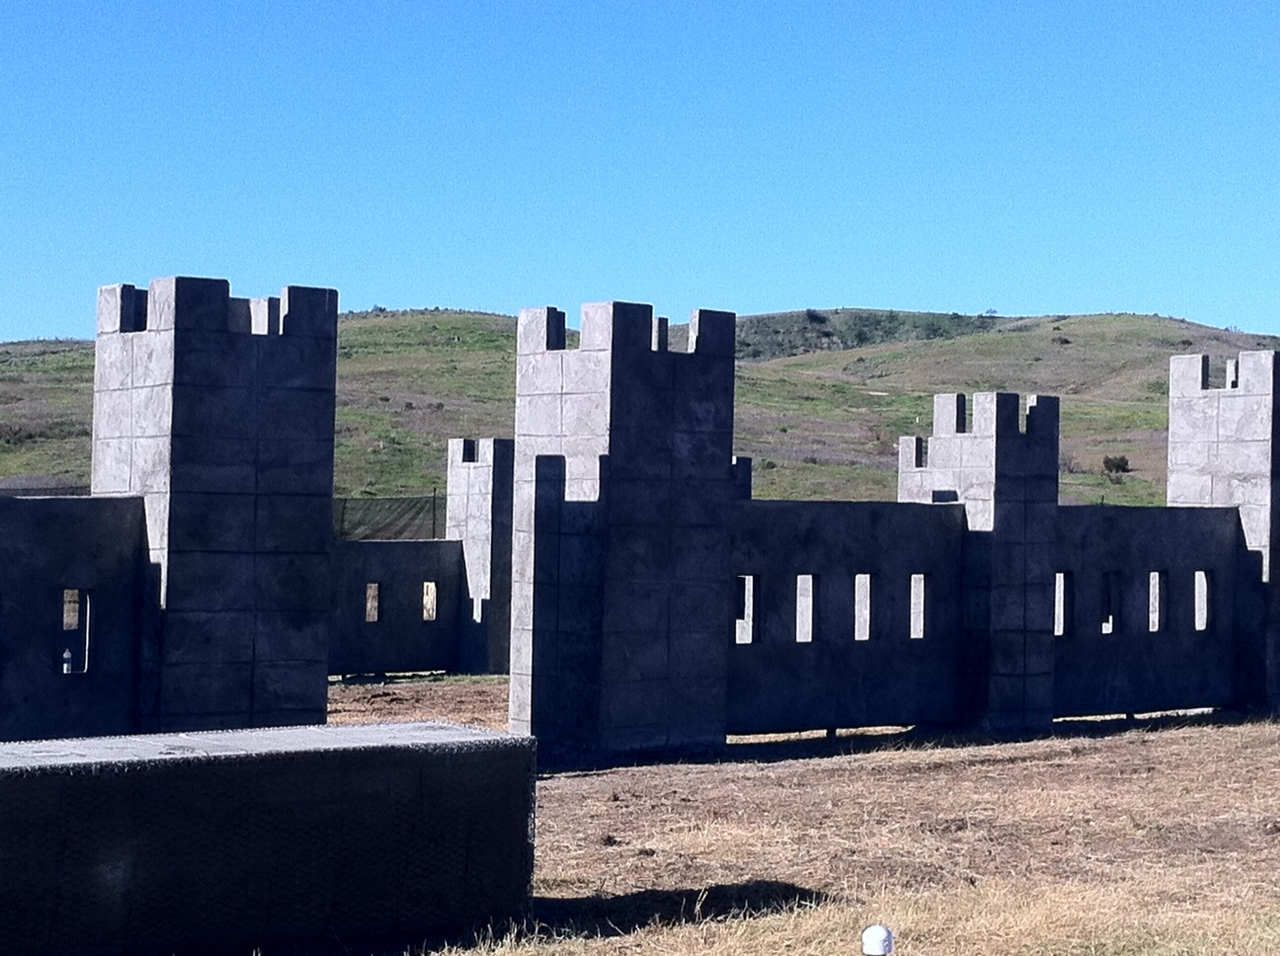 Bunker Block Castle 16' x 16' x 12' tall